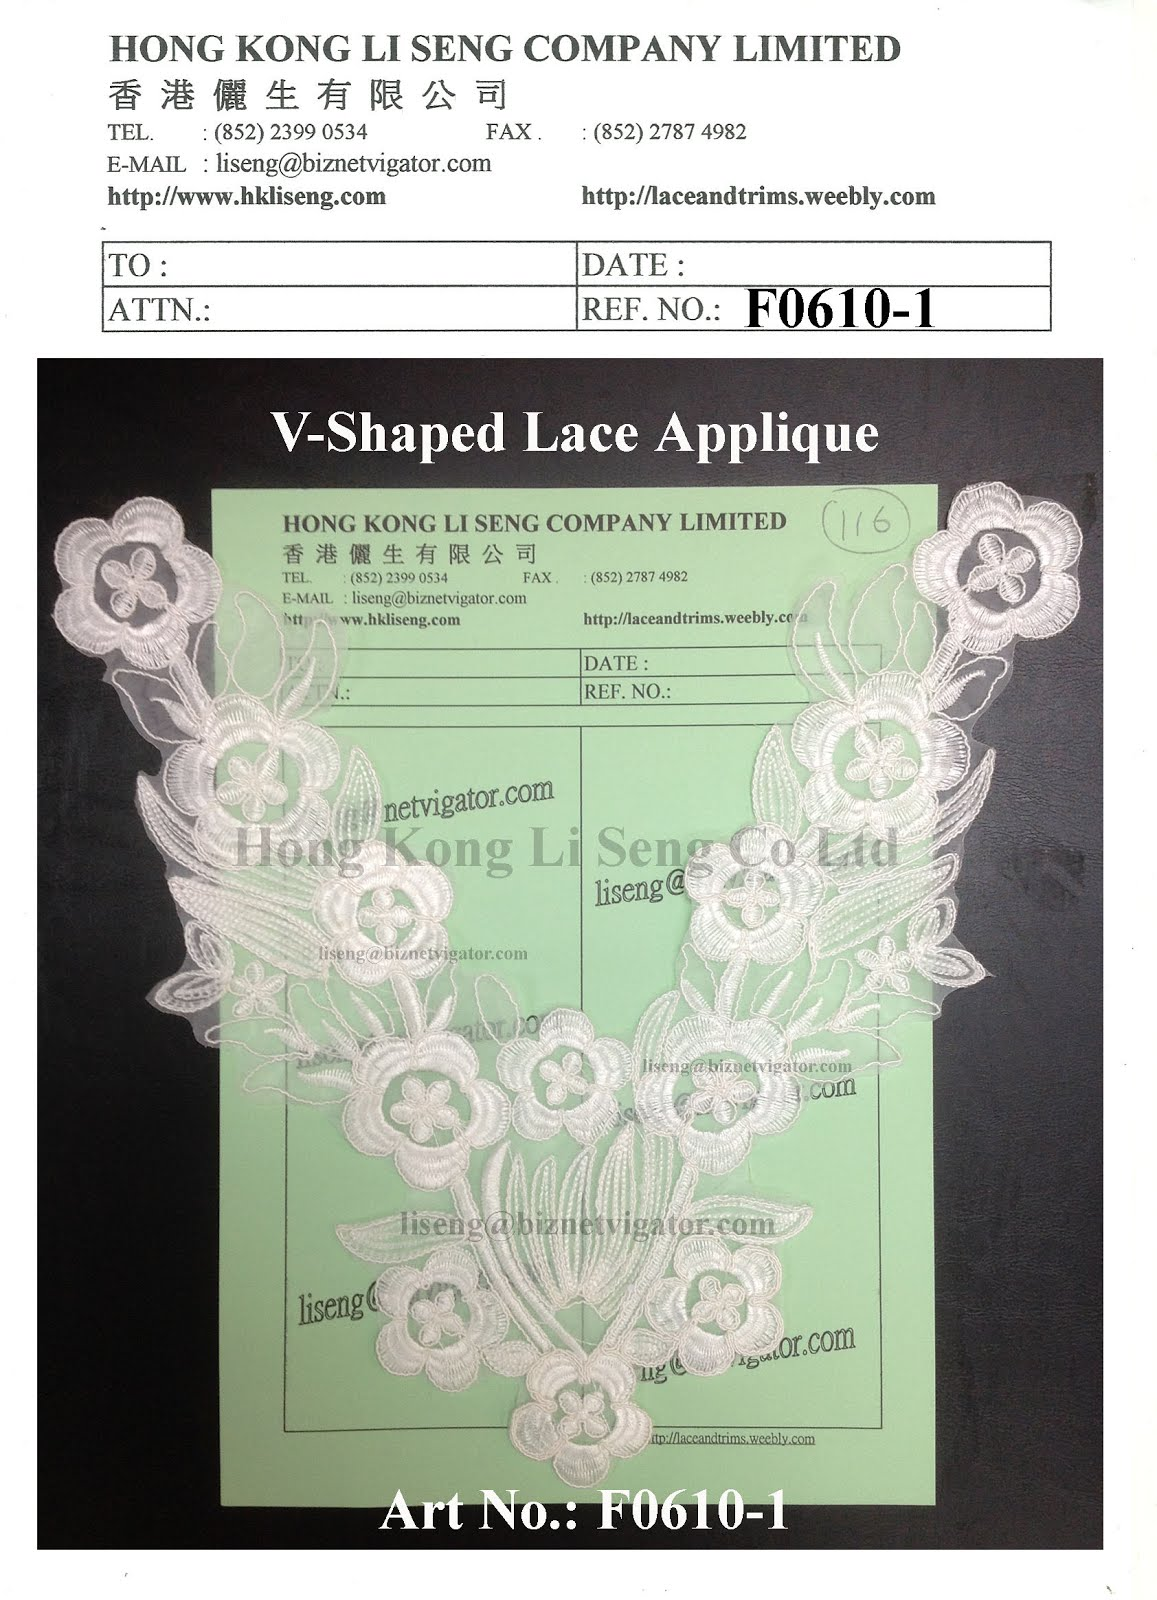 V-Shaped Lace Applique for Wedding Dress